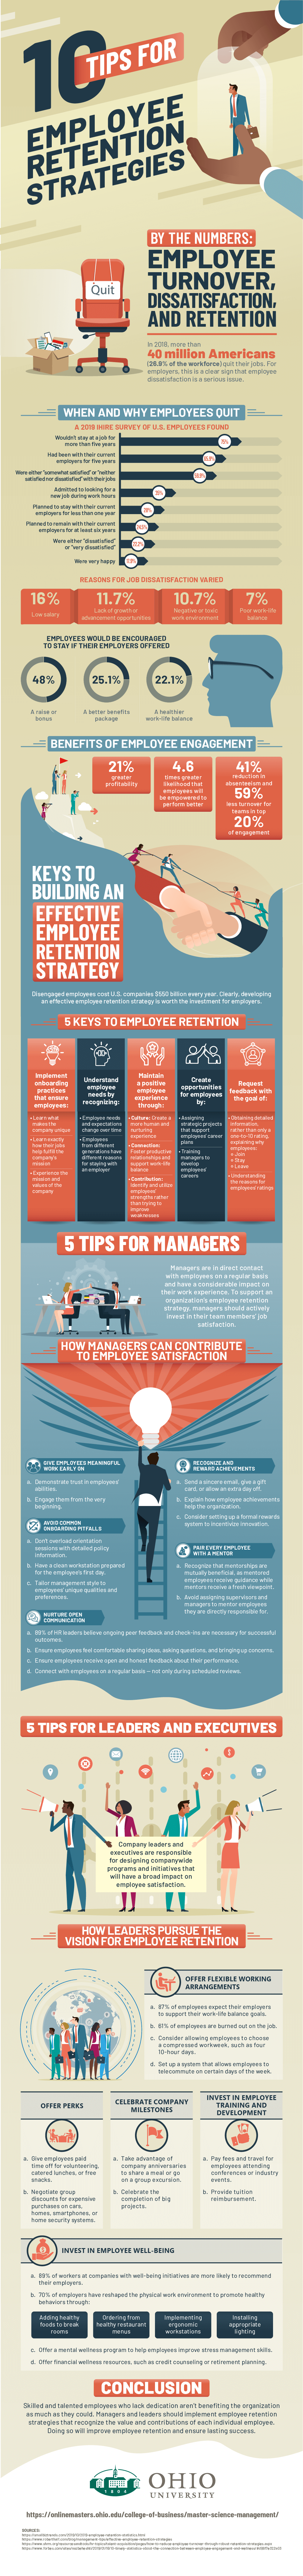 How employers can use retention strategies to increase the chances of keeping employees satisfied.